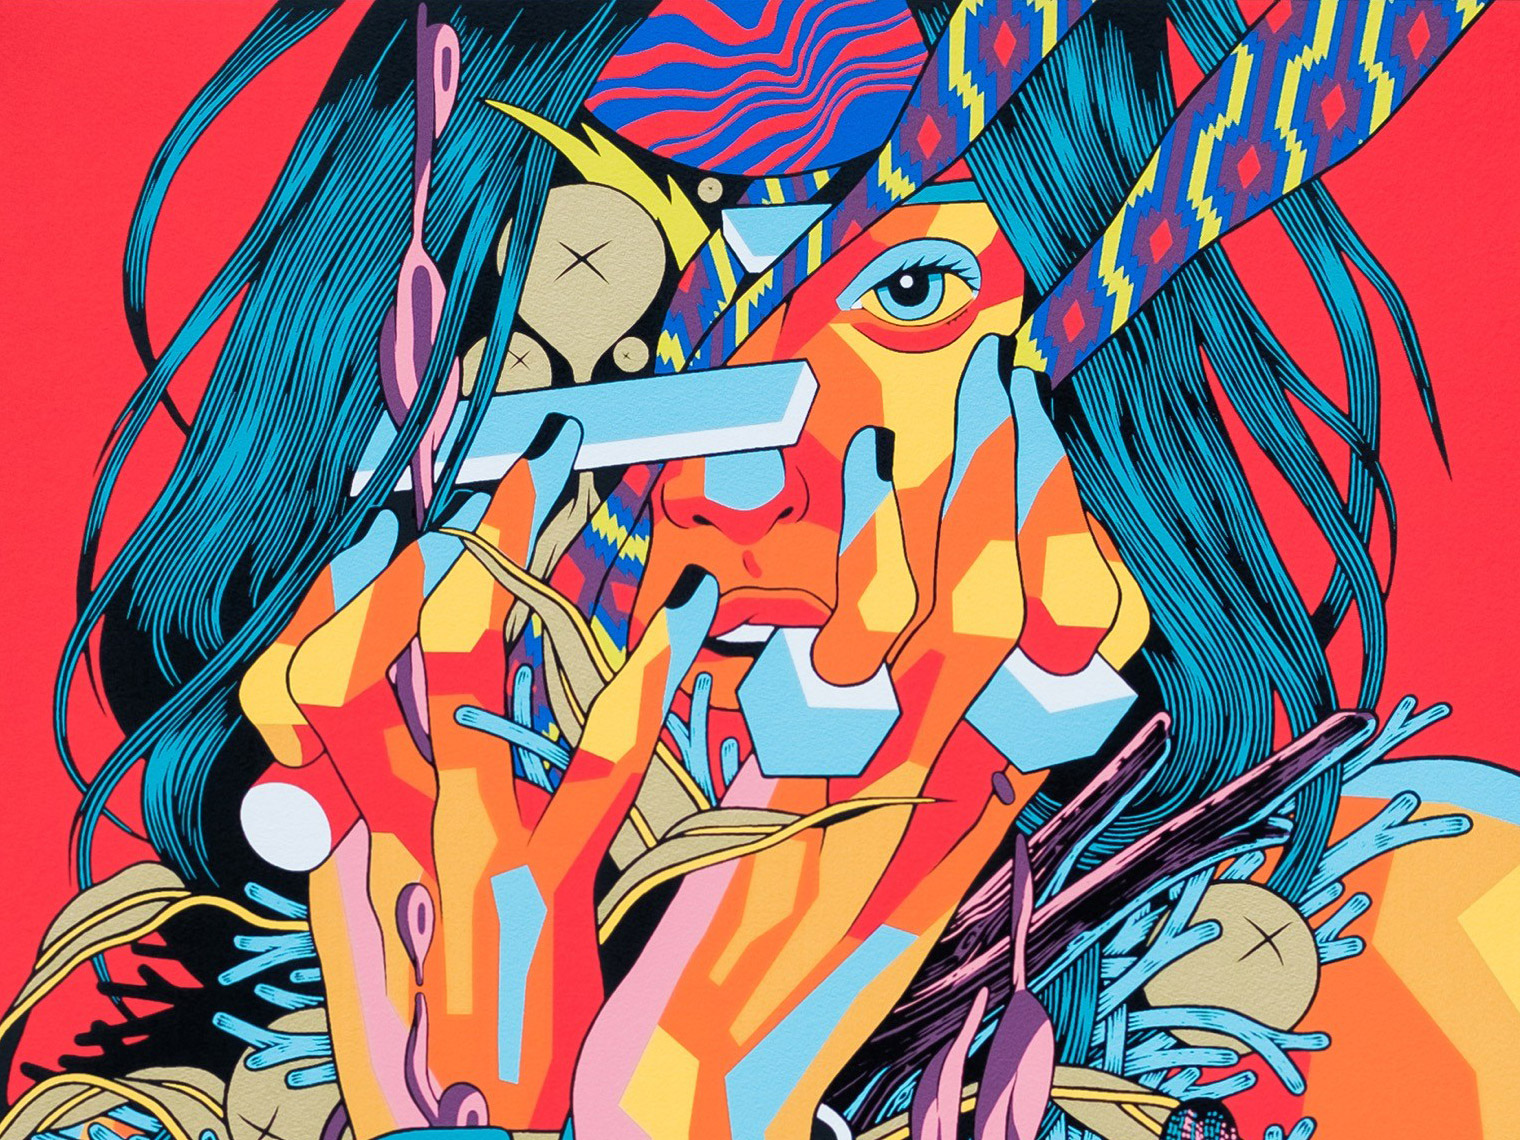 Kaleidoscopic Chaos: The Graphic Art of Bicicleta sem Freio